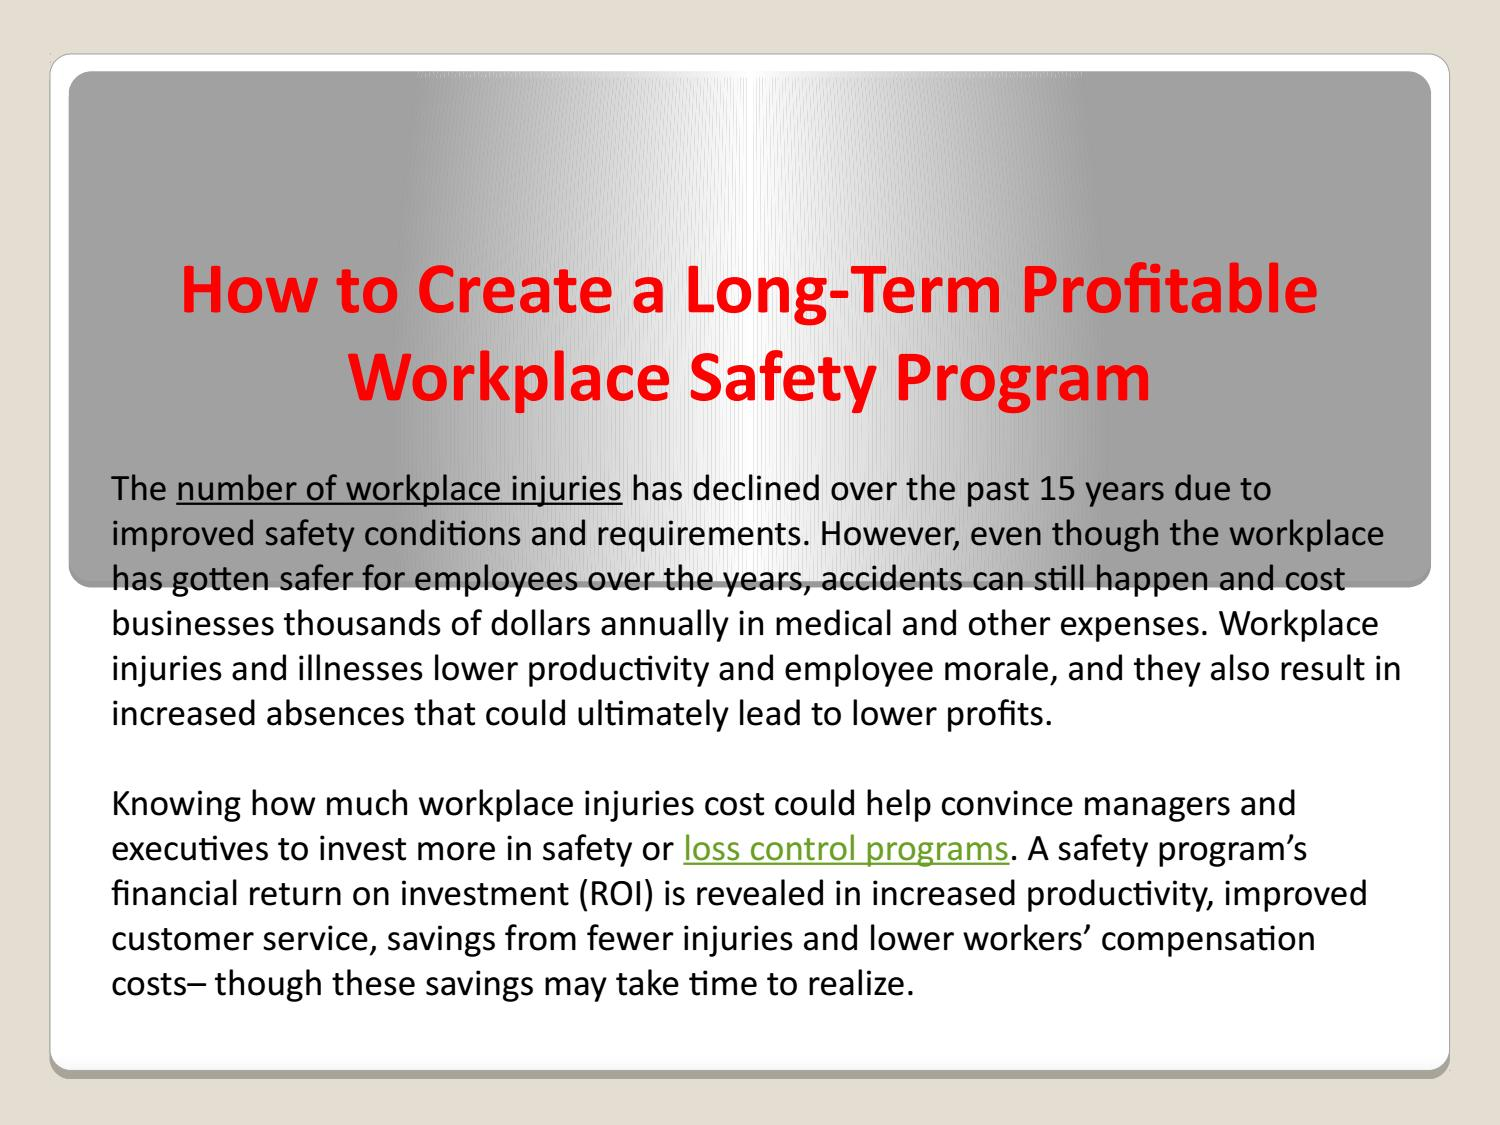 How to Create a Long-Term Profitable Workplace Safety